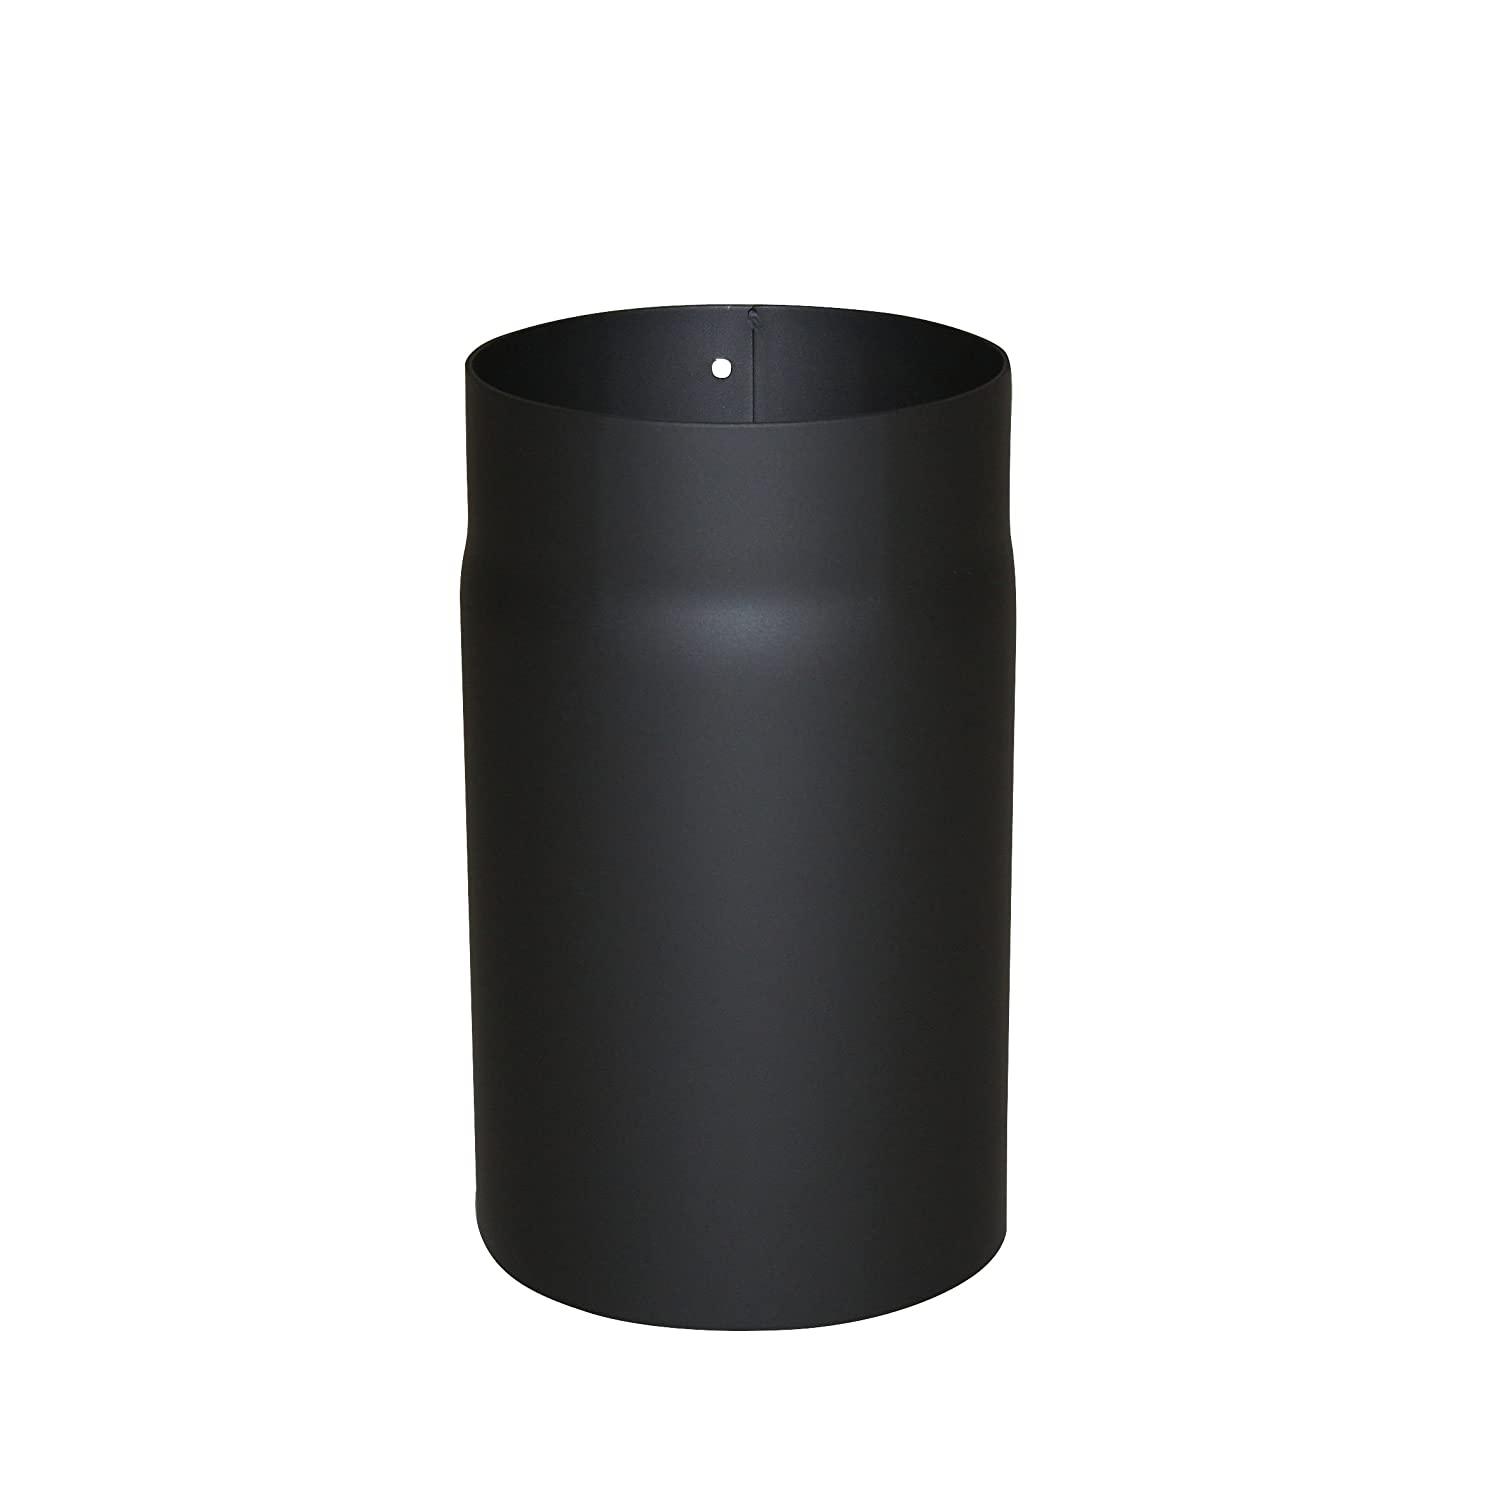 Kamino - Flam Ø 150 mm Steel Stove Pipe, Heat Resistant Senotherm Coating Flue Pipe for Stoves, approx. 250 mm Straight Length Chimney Pipe, Single Wall Pipe EN 1856-2 Standard, Black 331800